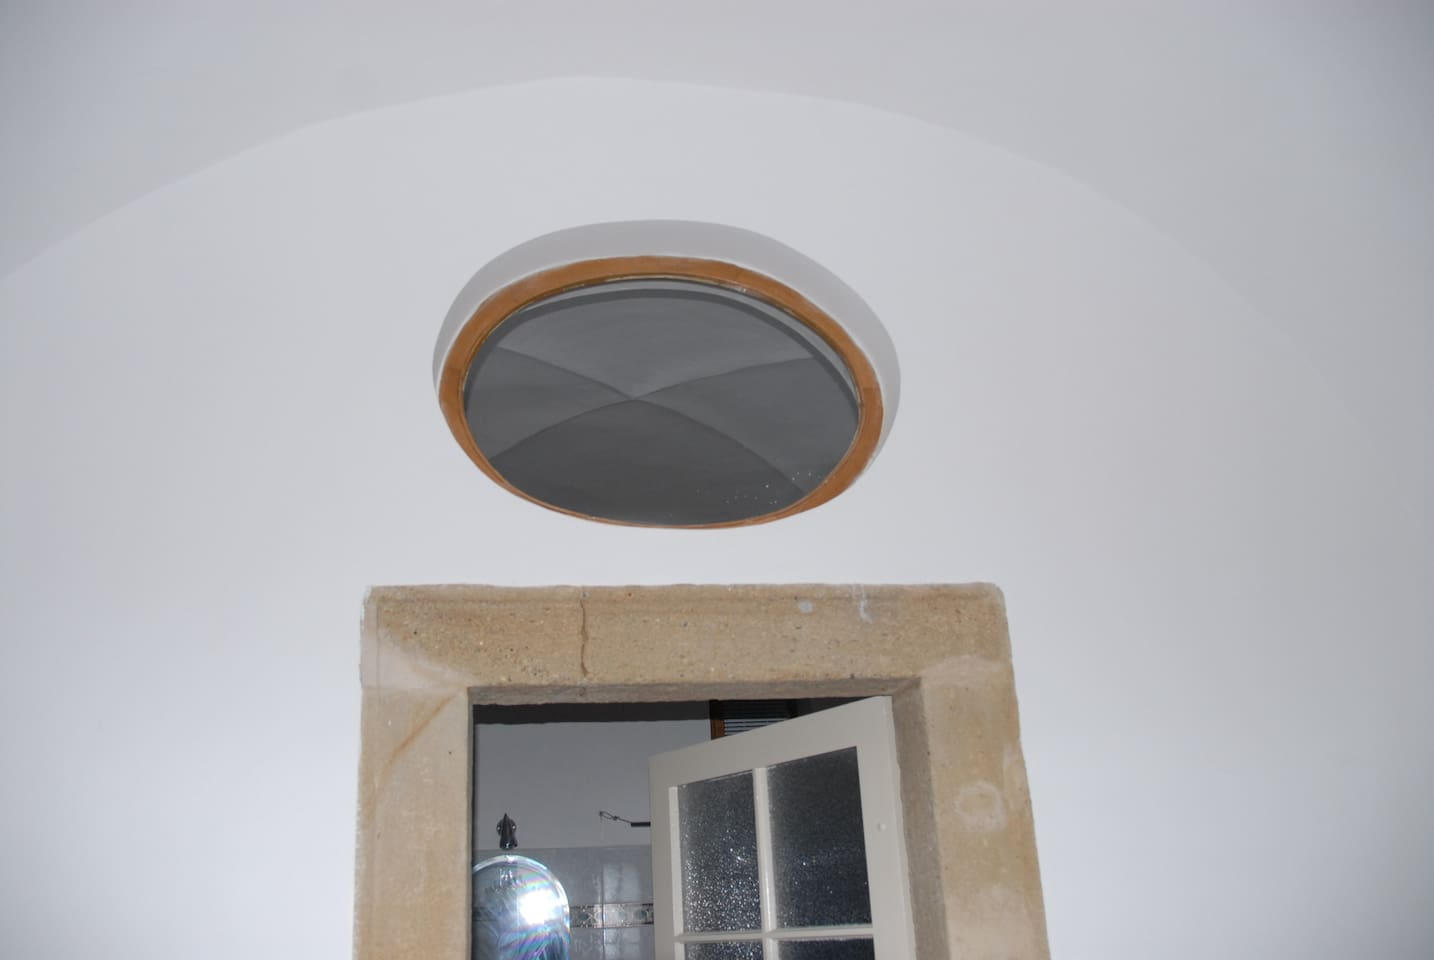 Just some of the architectural details of the old flat. Sorry I don't really have photos that capture the fell of the flat. Contact and ask and I can send more.